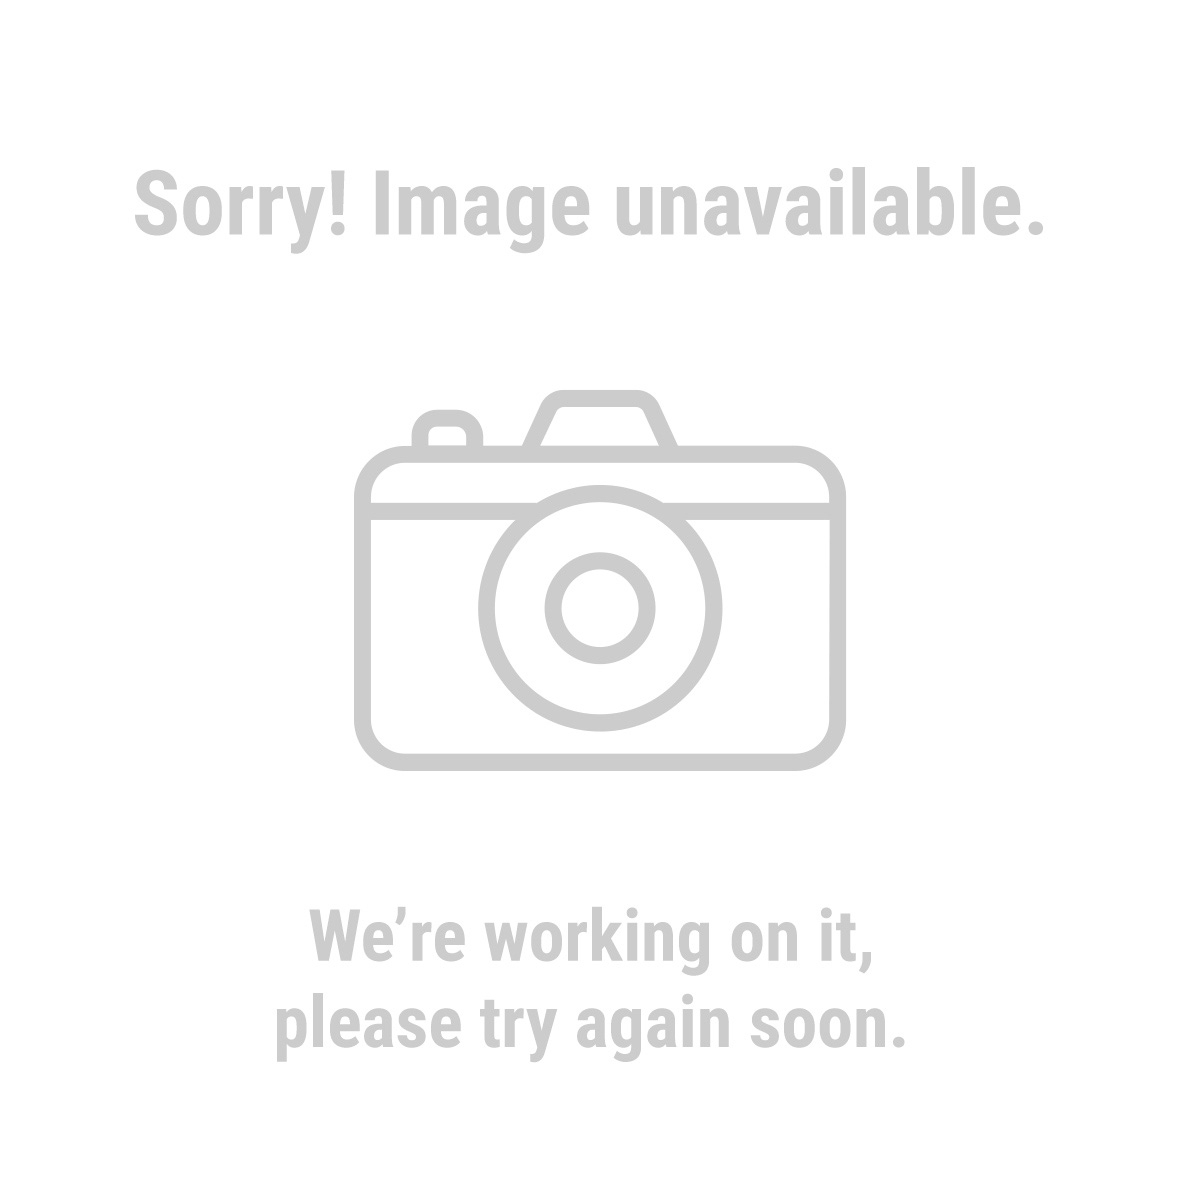 Central Machinery 99835 Chain Saw Chain Breaker/Spinner